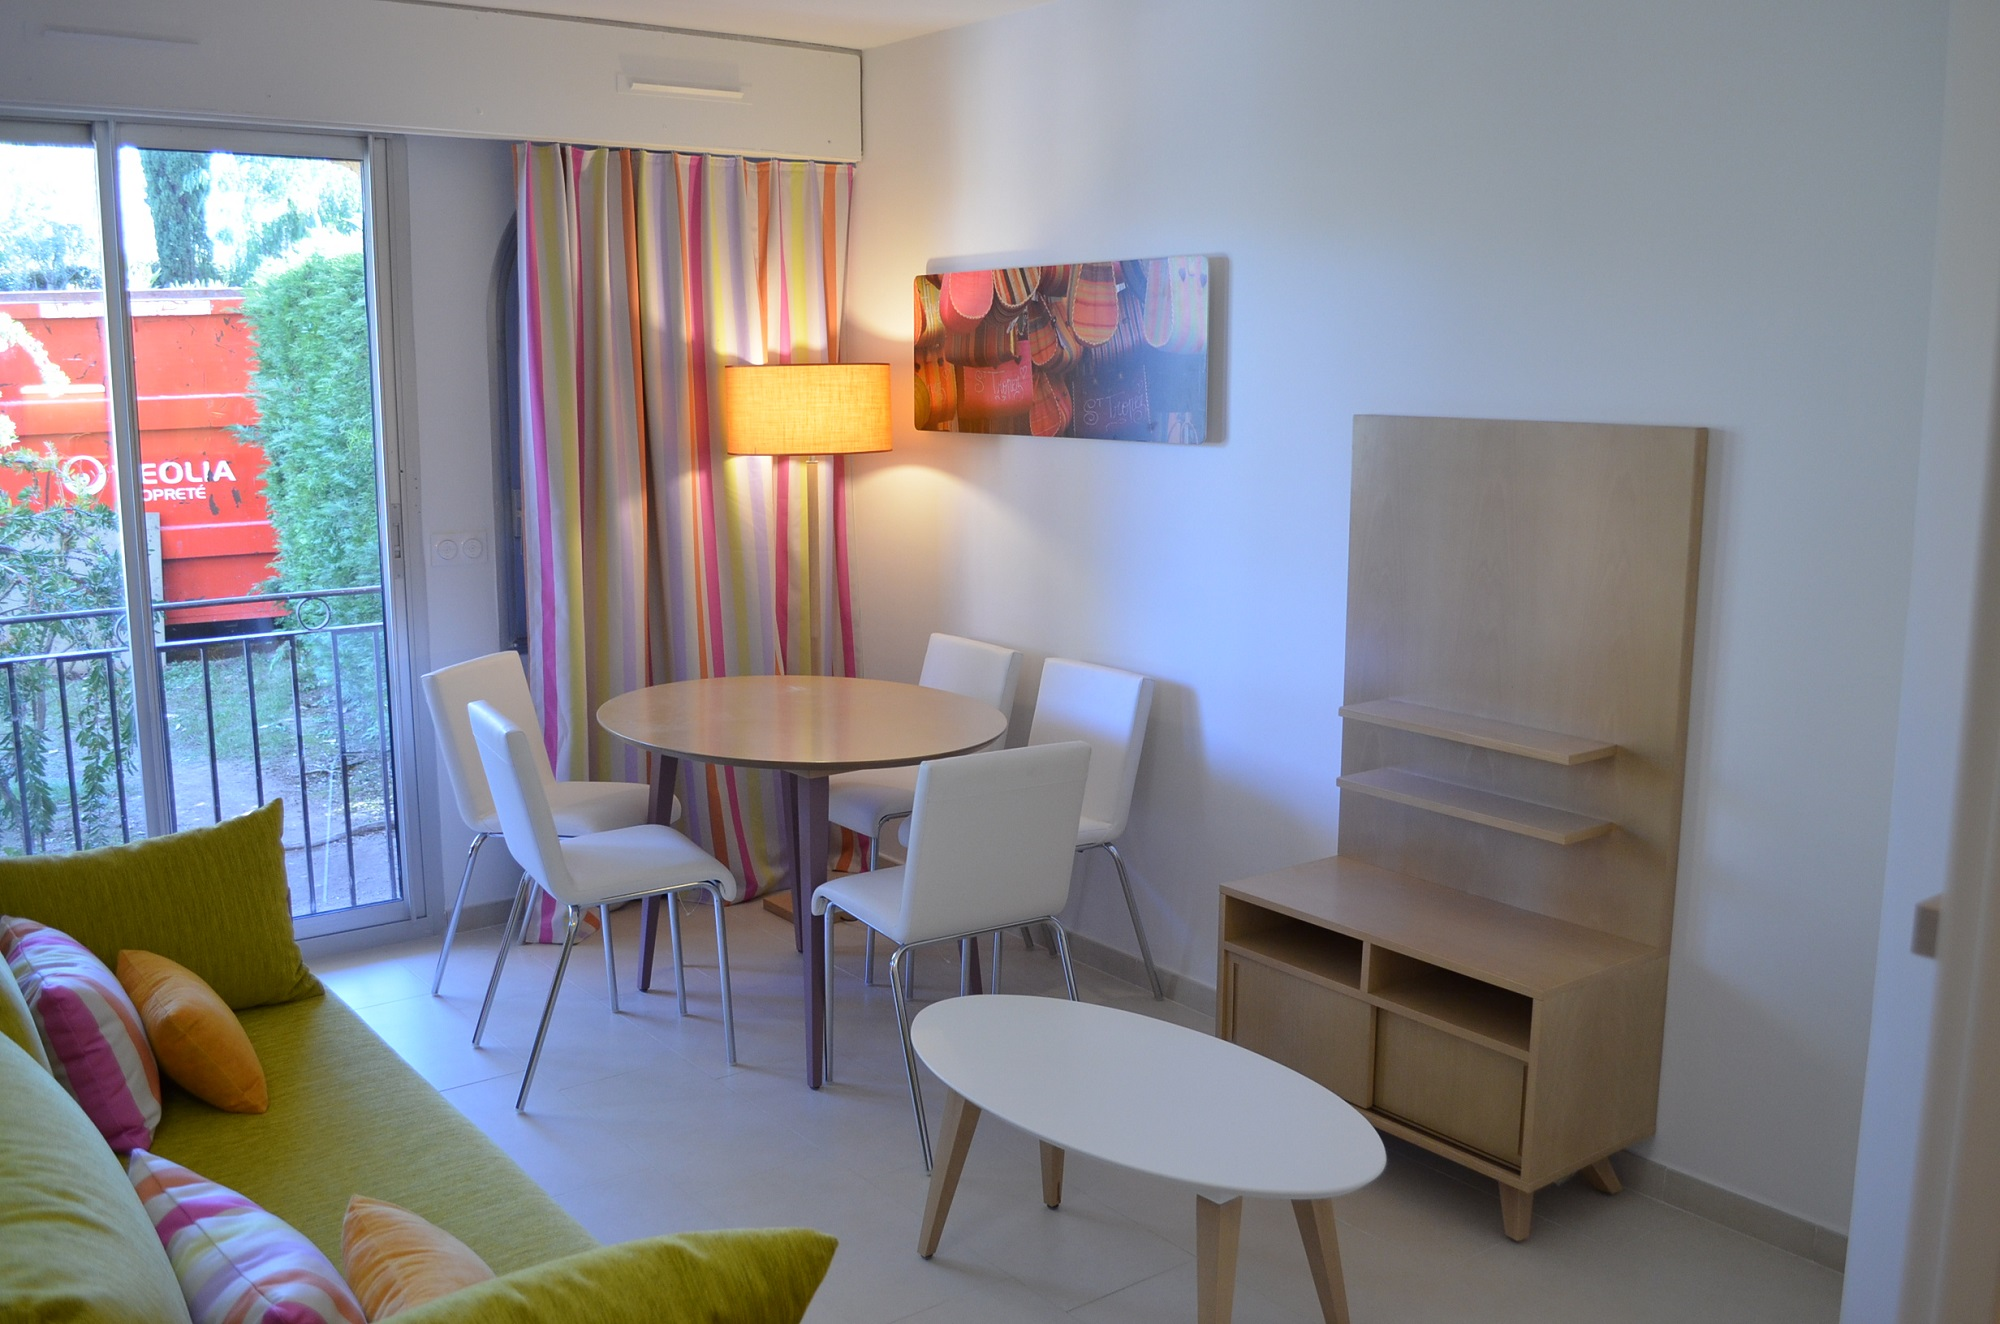 http://www.deco-resort.com/intranet/uploads/photo/st-tropez-amandine5.JPG